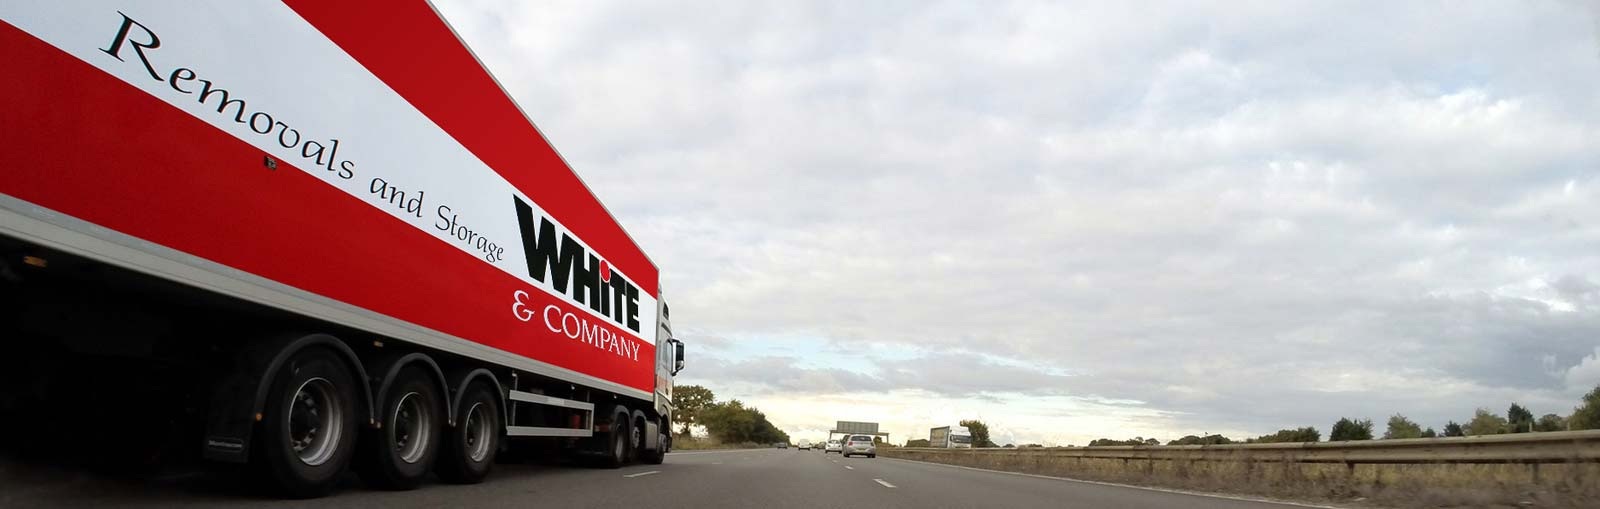 White & Co Truck En Route